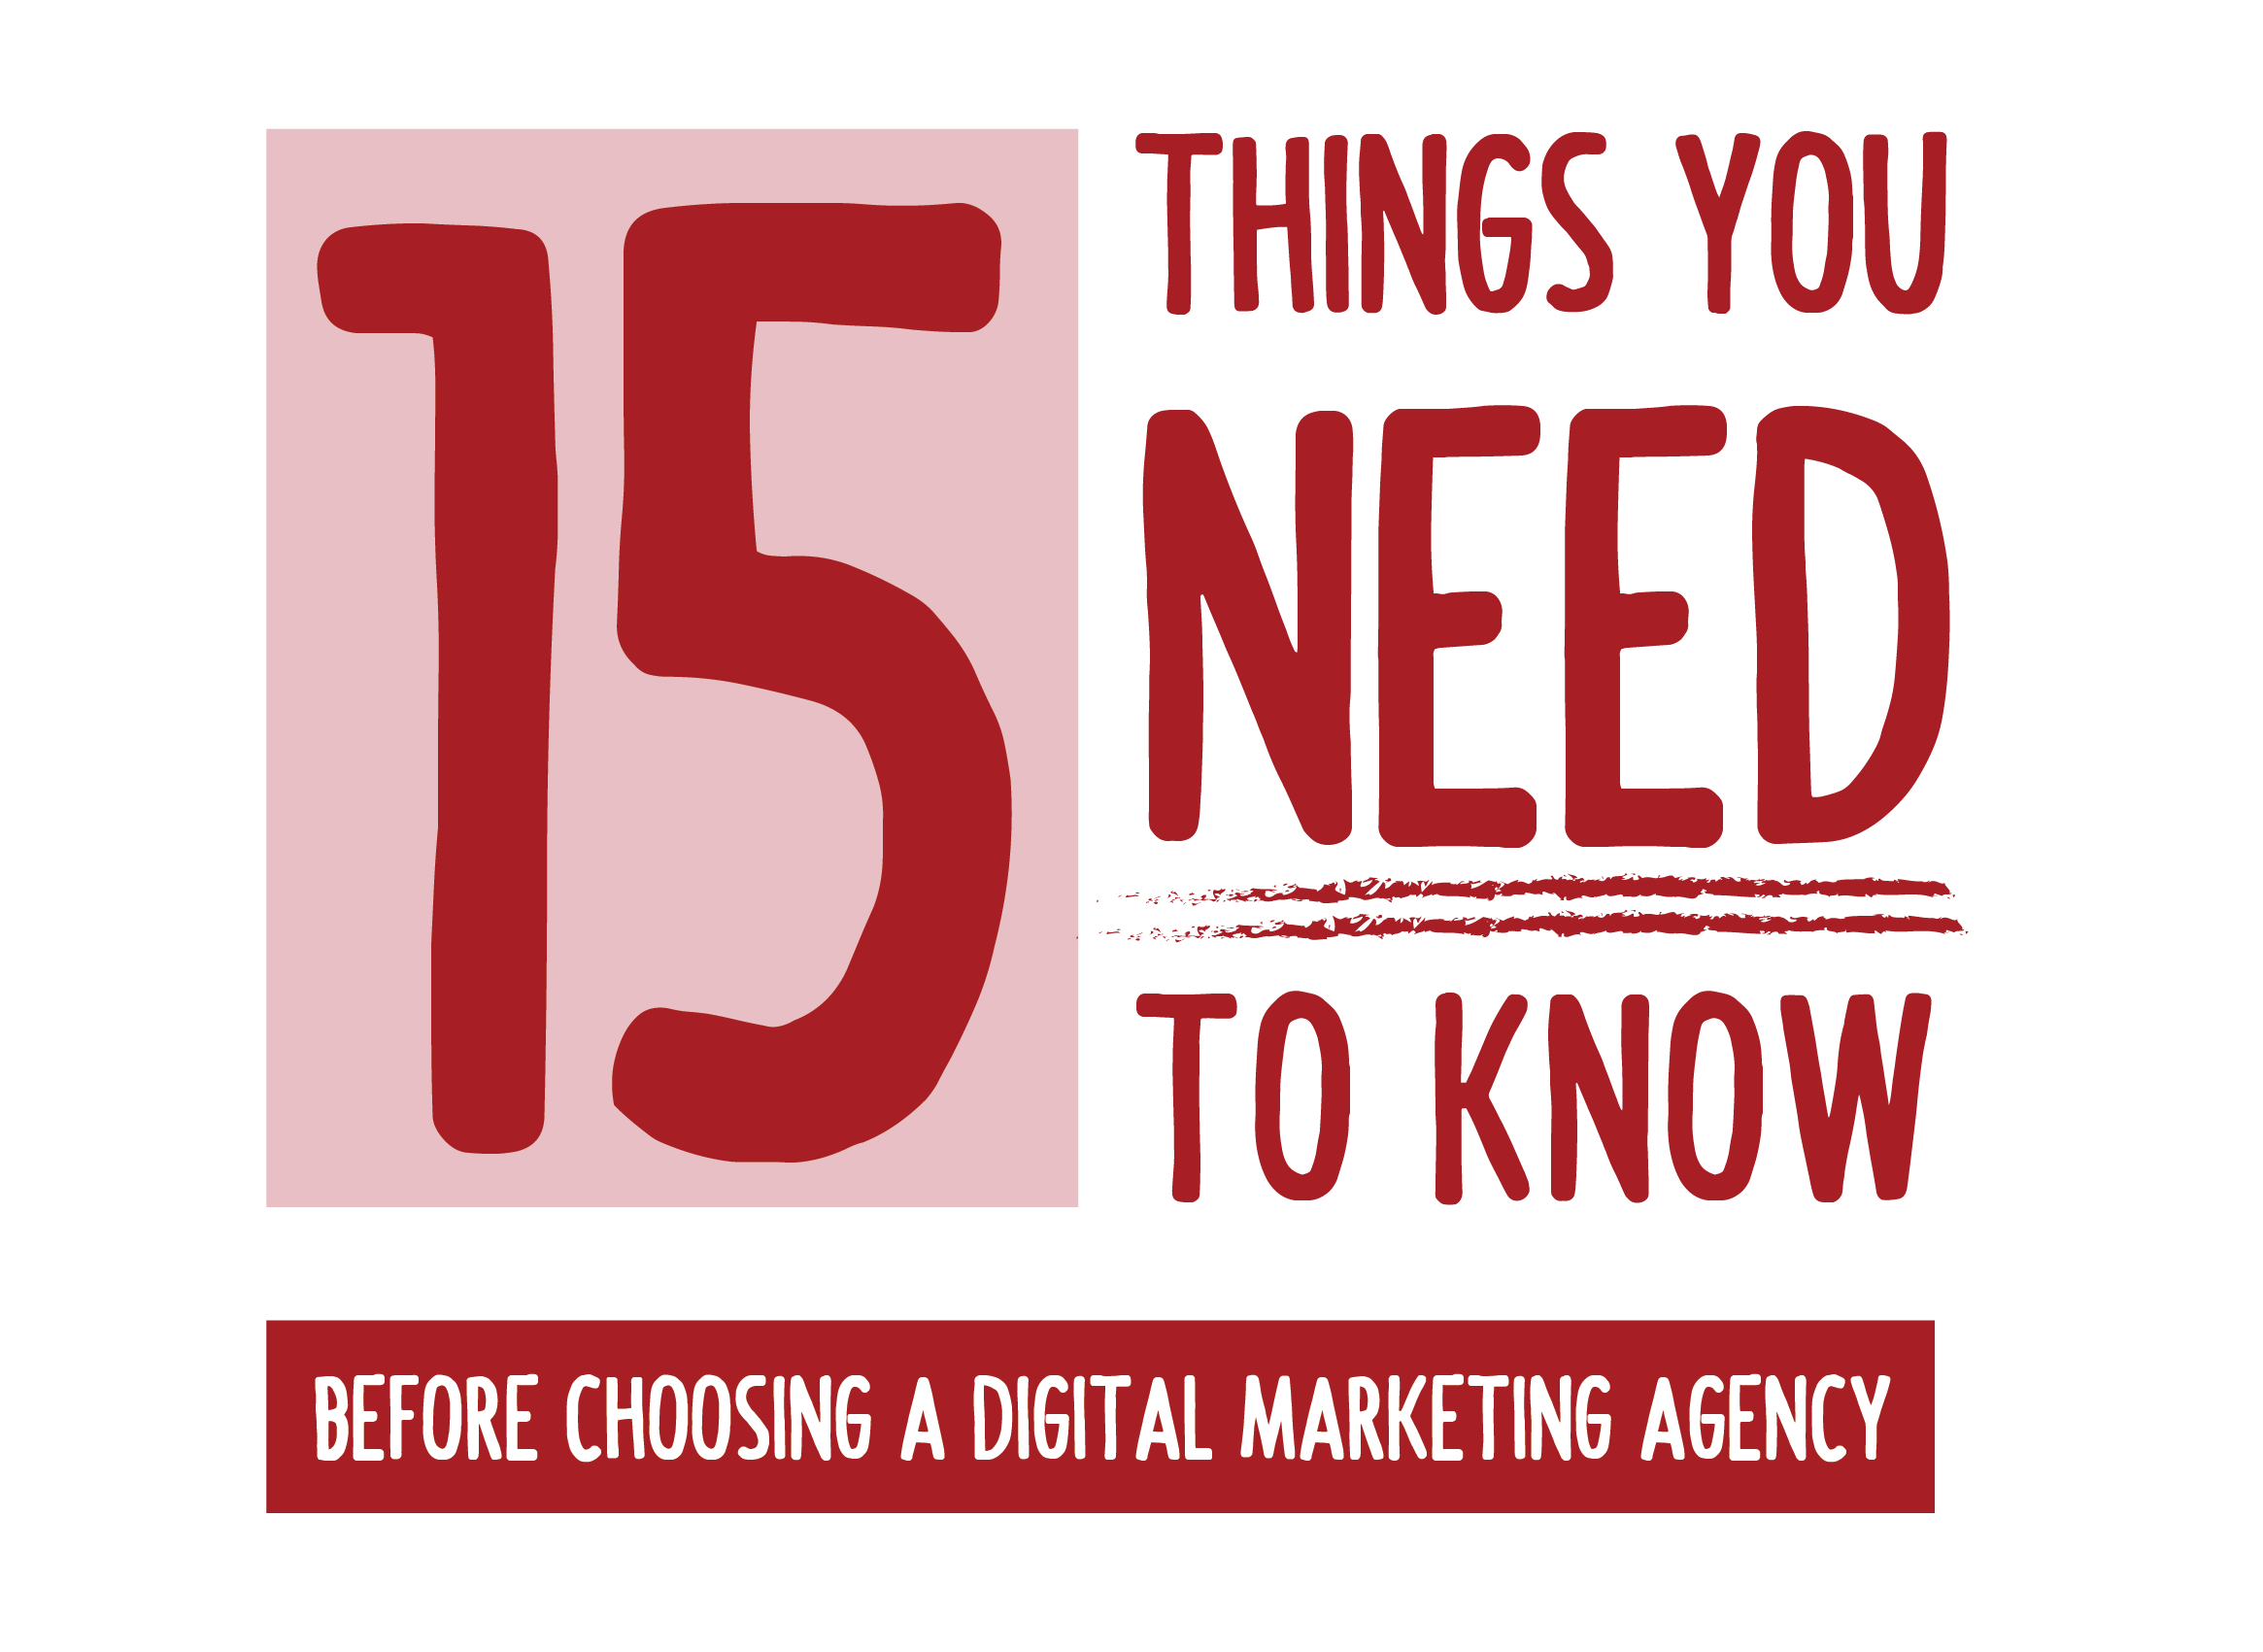 15 things you need to know before choosing a digital marketing agency